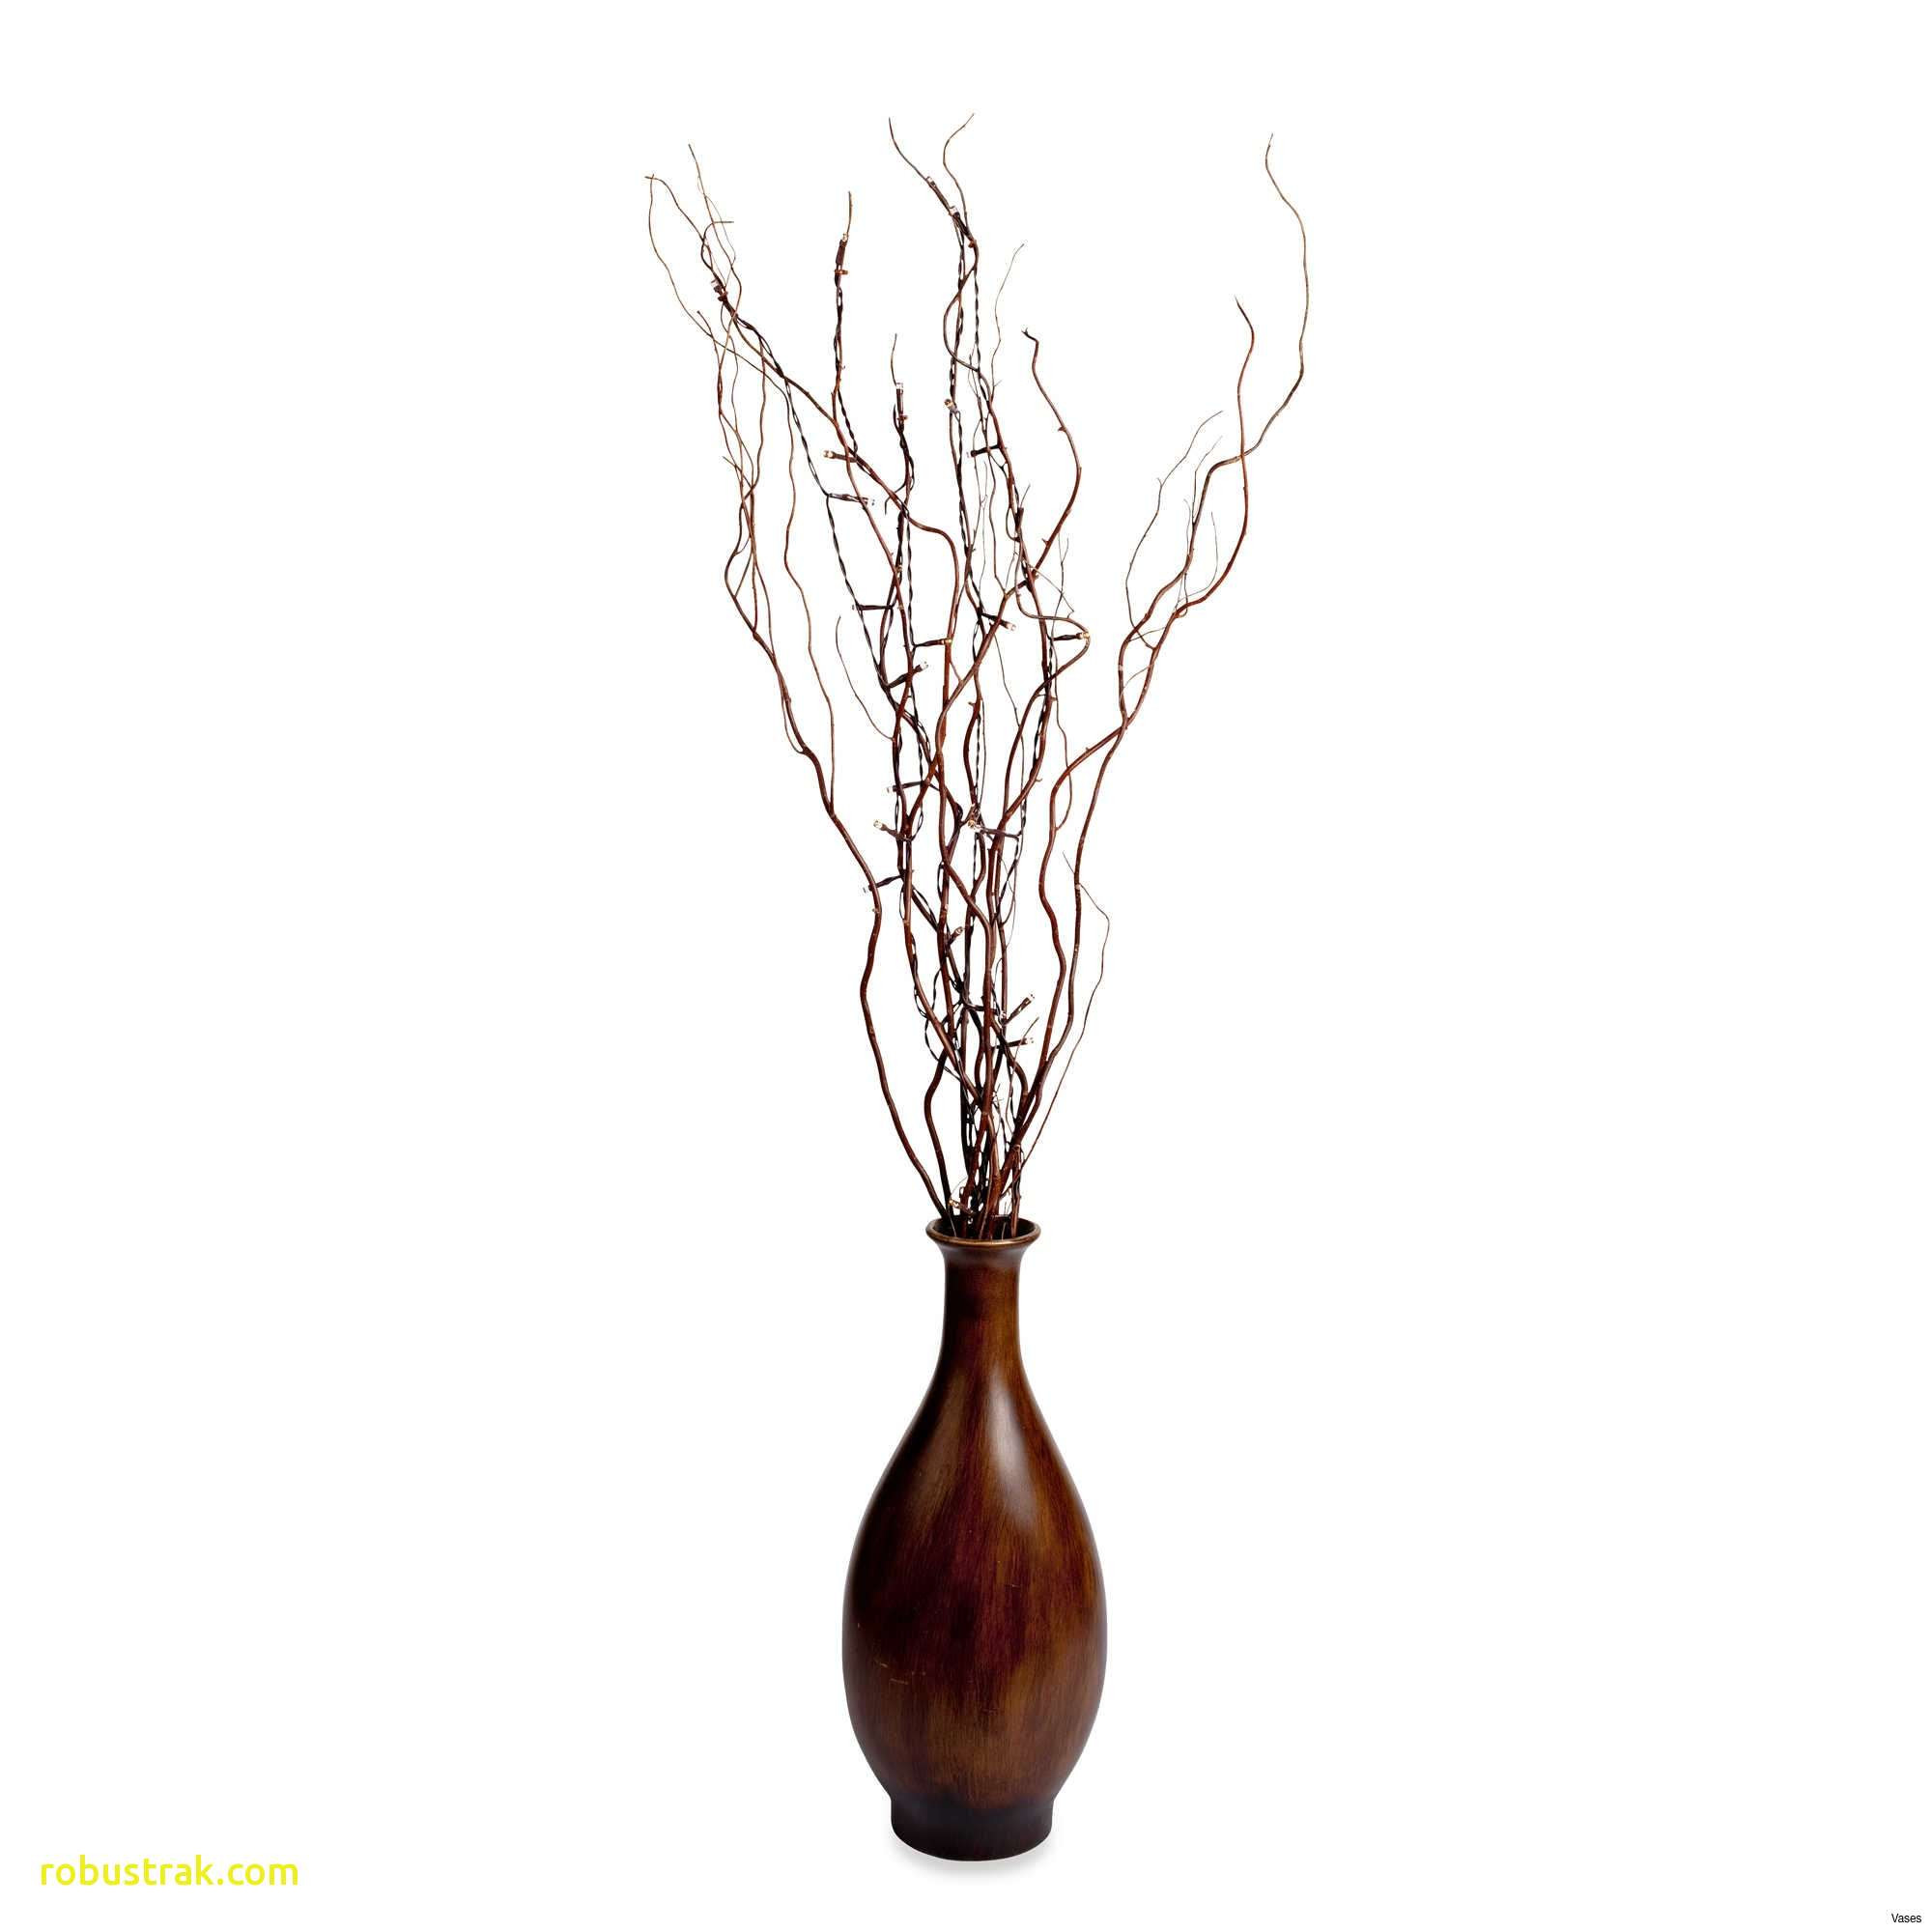 Contemporary Decorative Vases Of Inspirational Decor Sticks In A Vase Home Design Ideas with Regard to Brown Lighted Branches Matched with Home Accessories Ideas Vase Sticks Luxury Standing Tableh Vases Decorative In